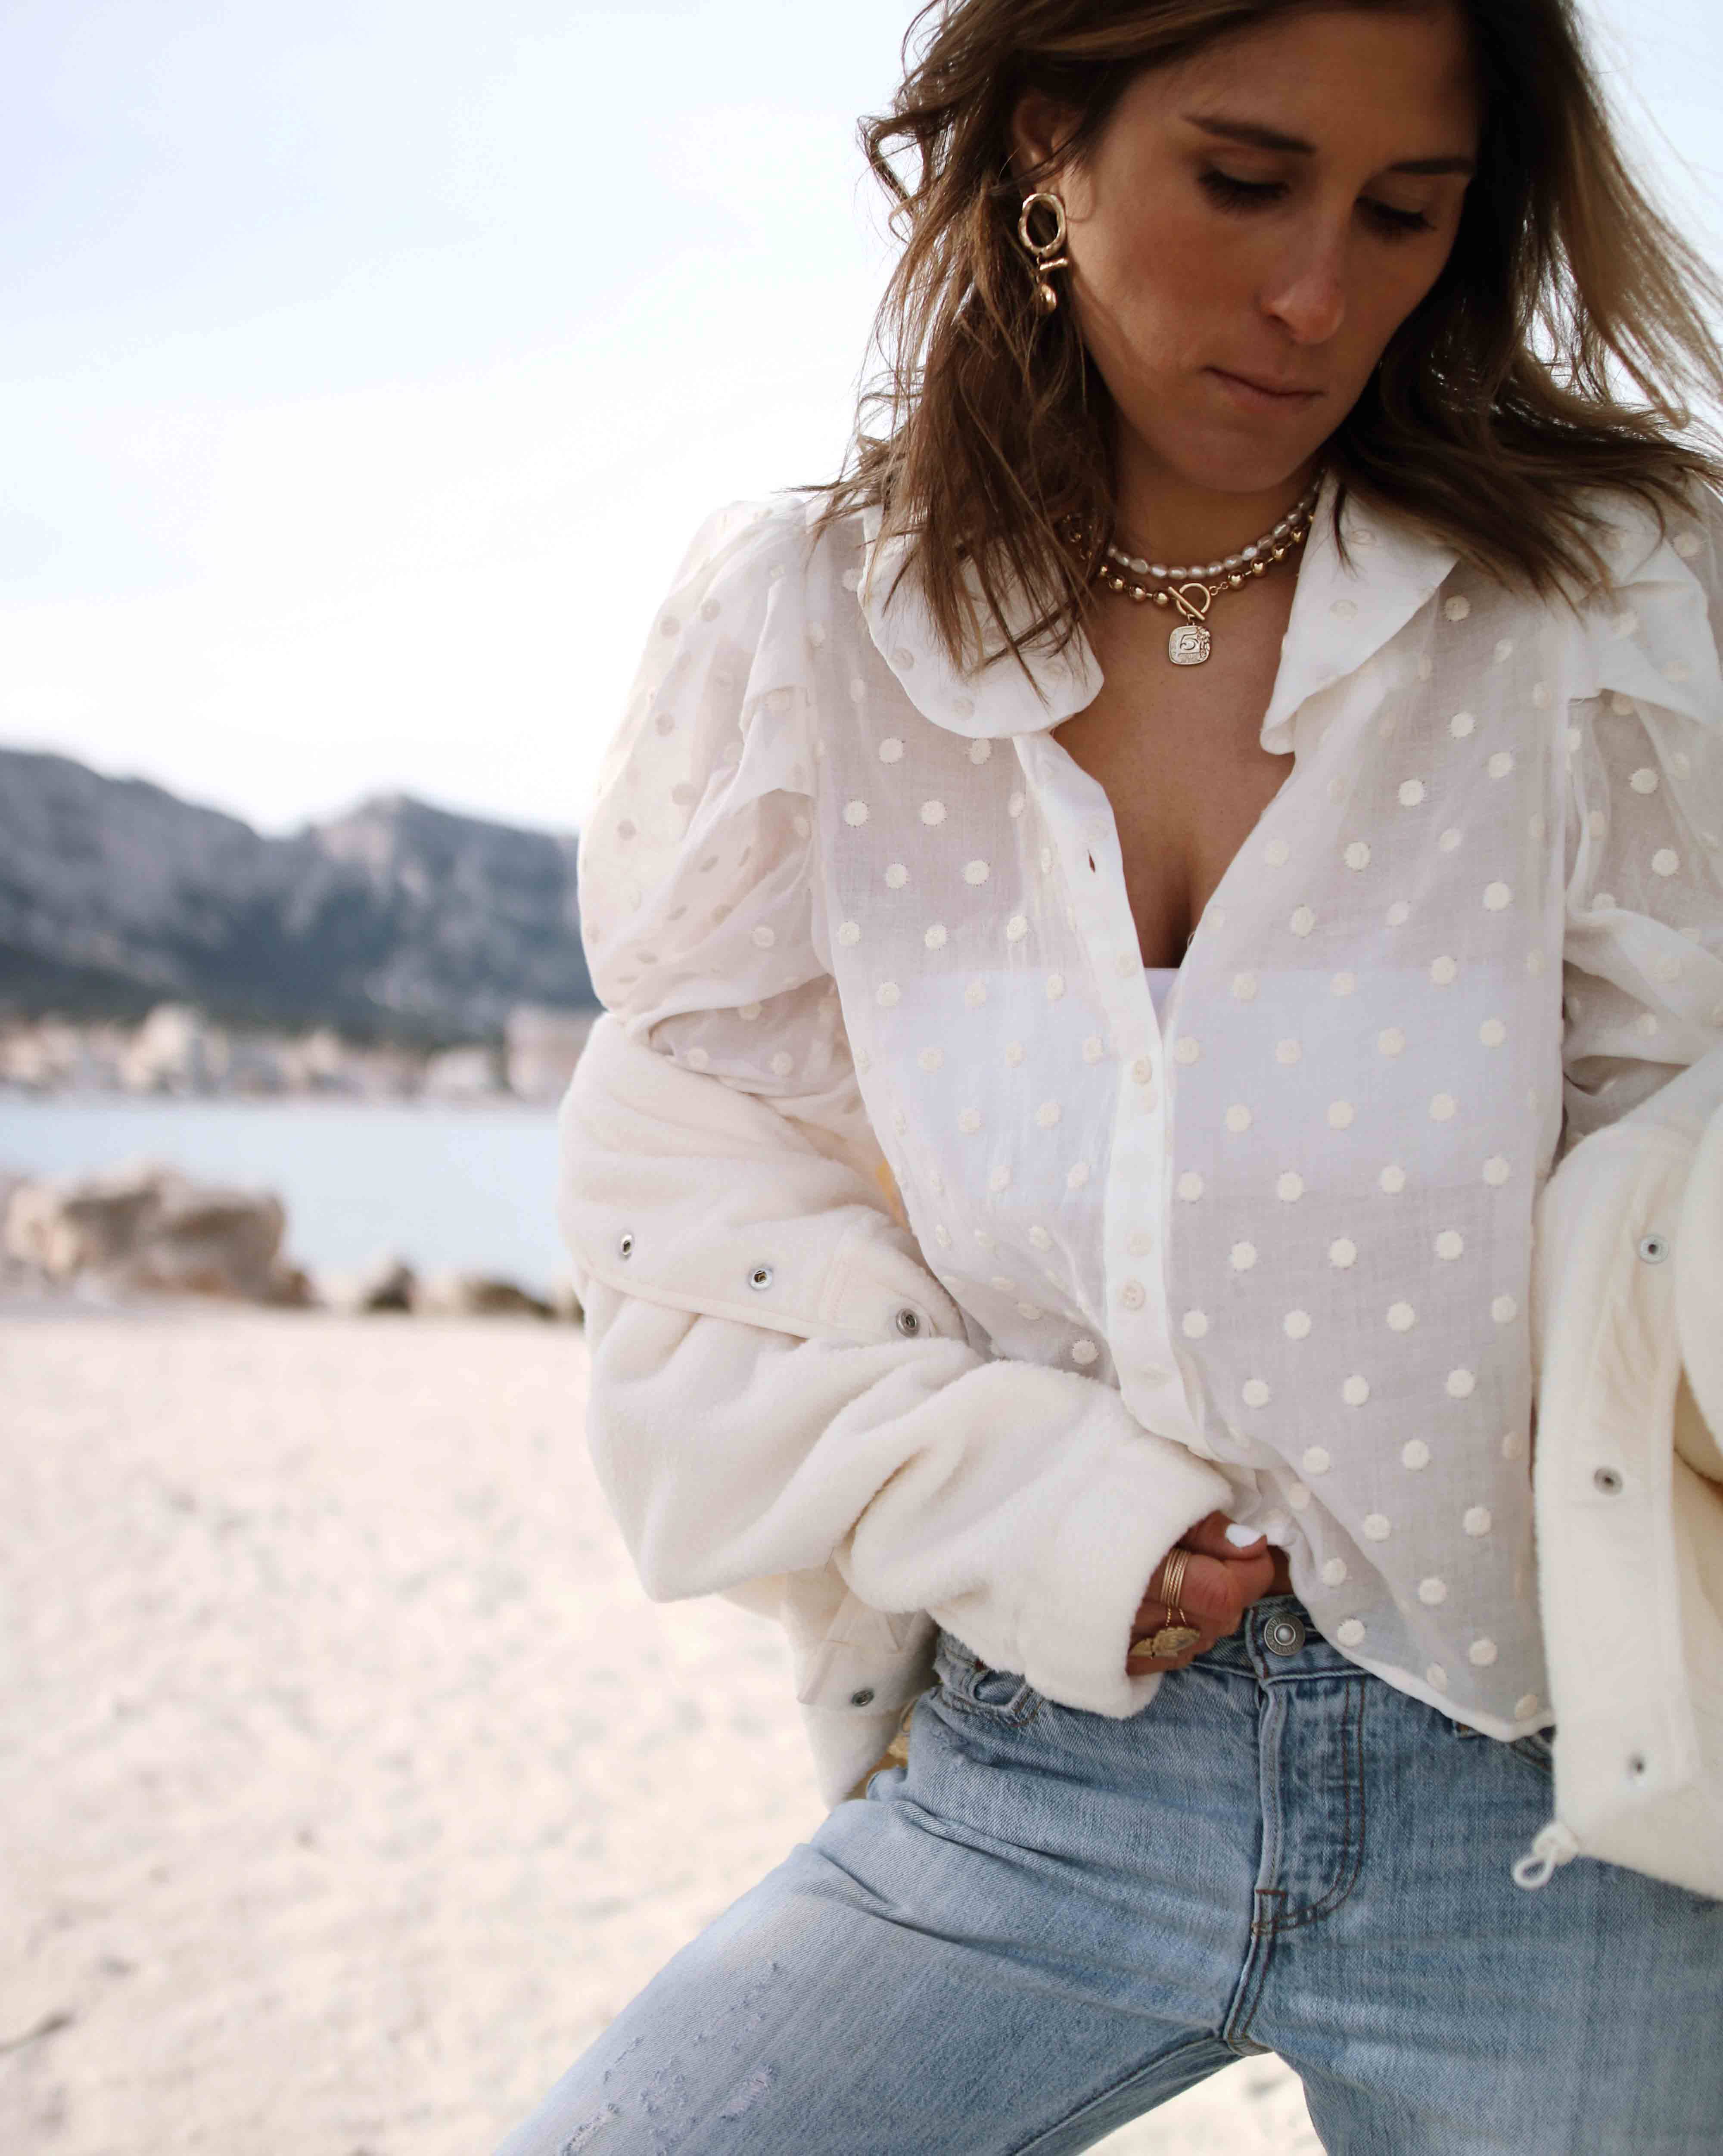 @chon.and.chon fashion blogger, denim and white blouse outfit